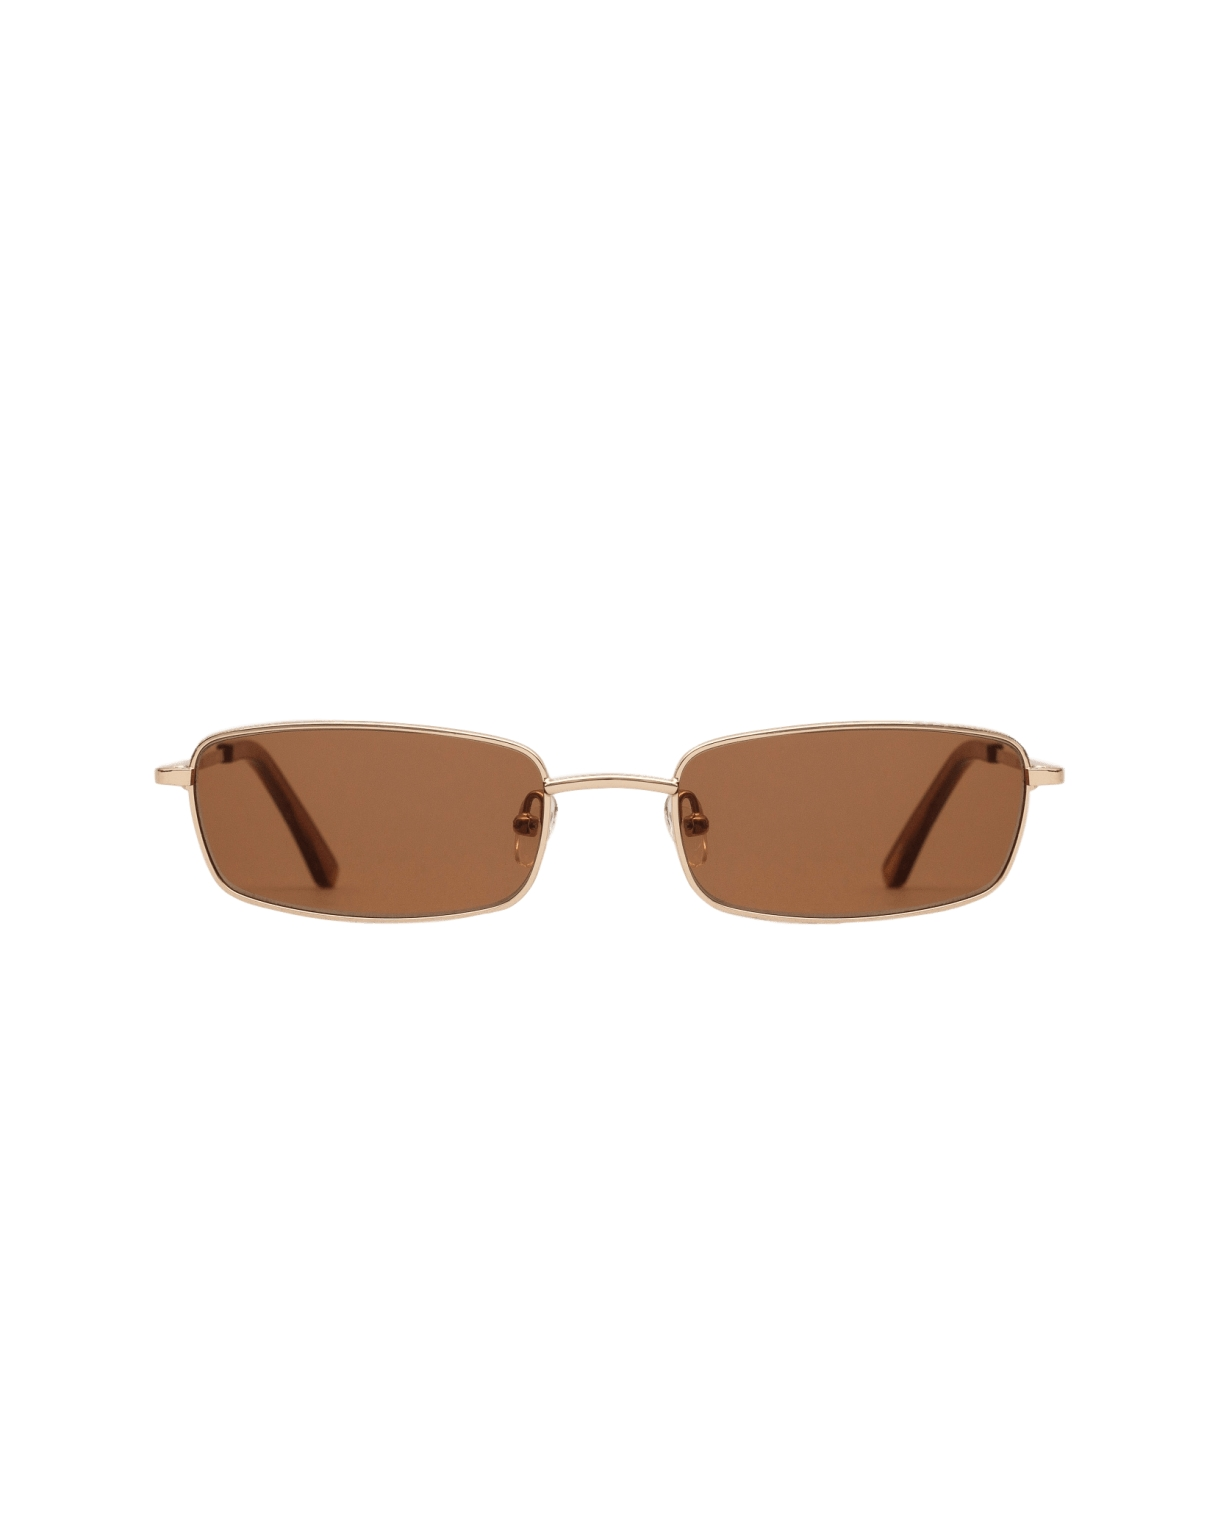 Olsen (Brown Lens) by Dmy by Dmy, available on dmybydmy.com for EUR120 Hailey Baldwin Sunglasses Exact Product